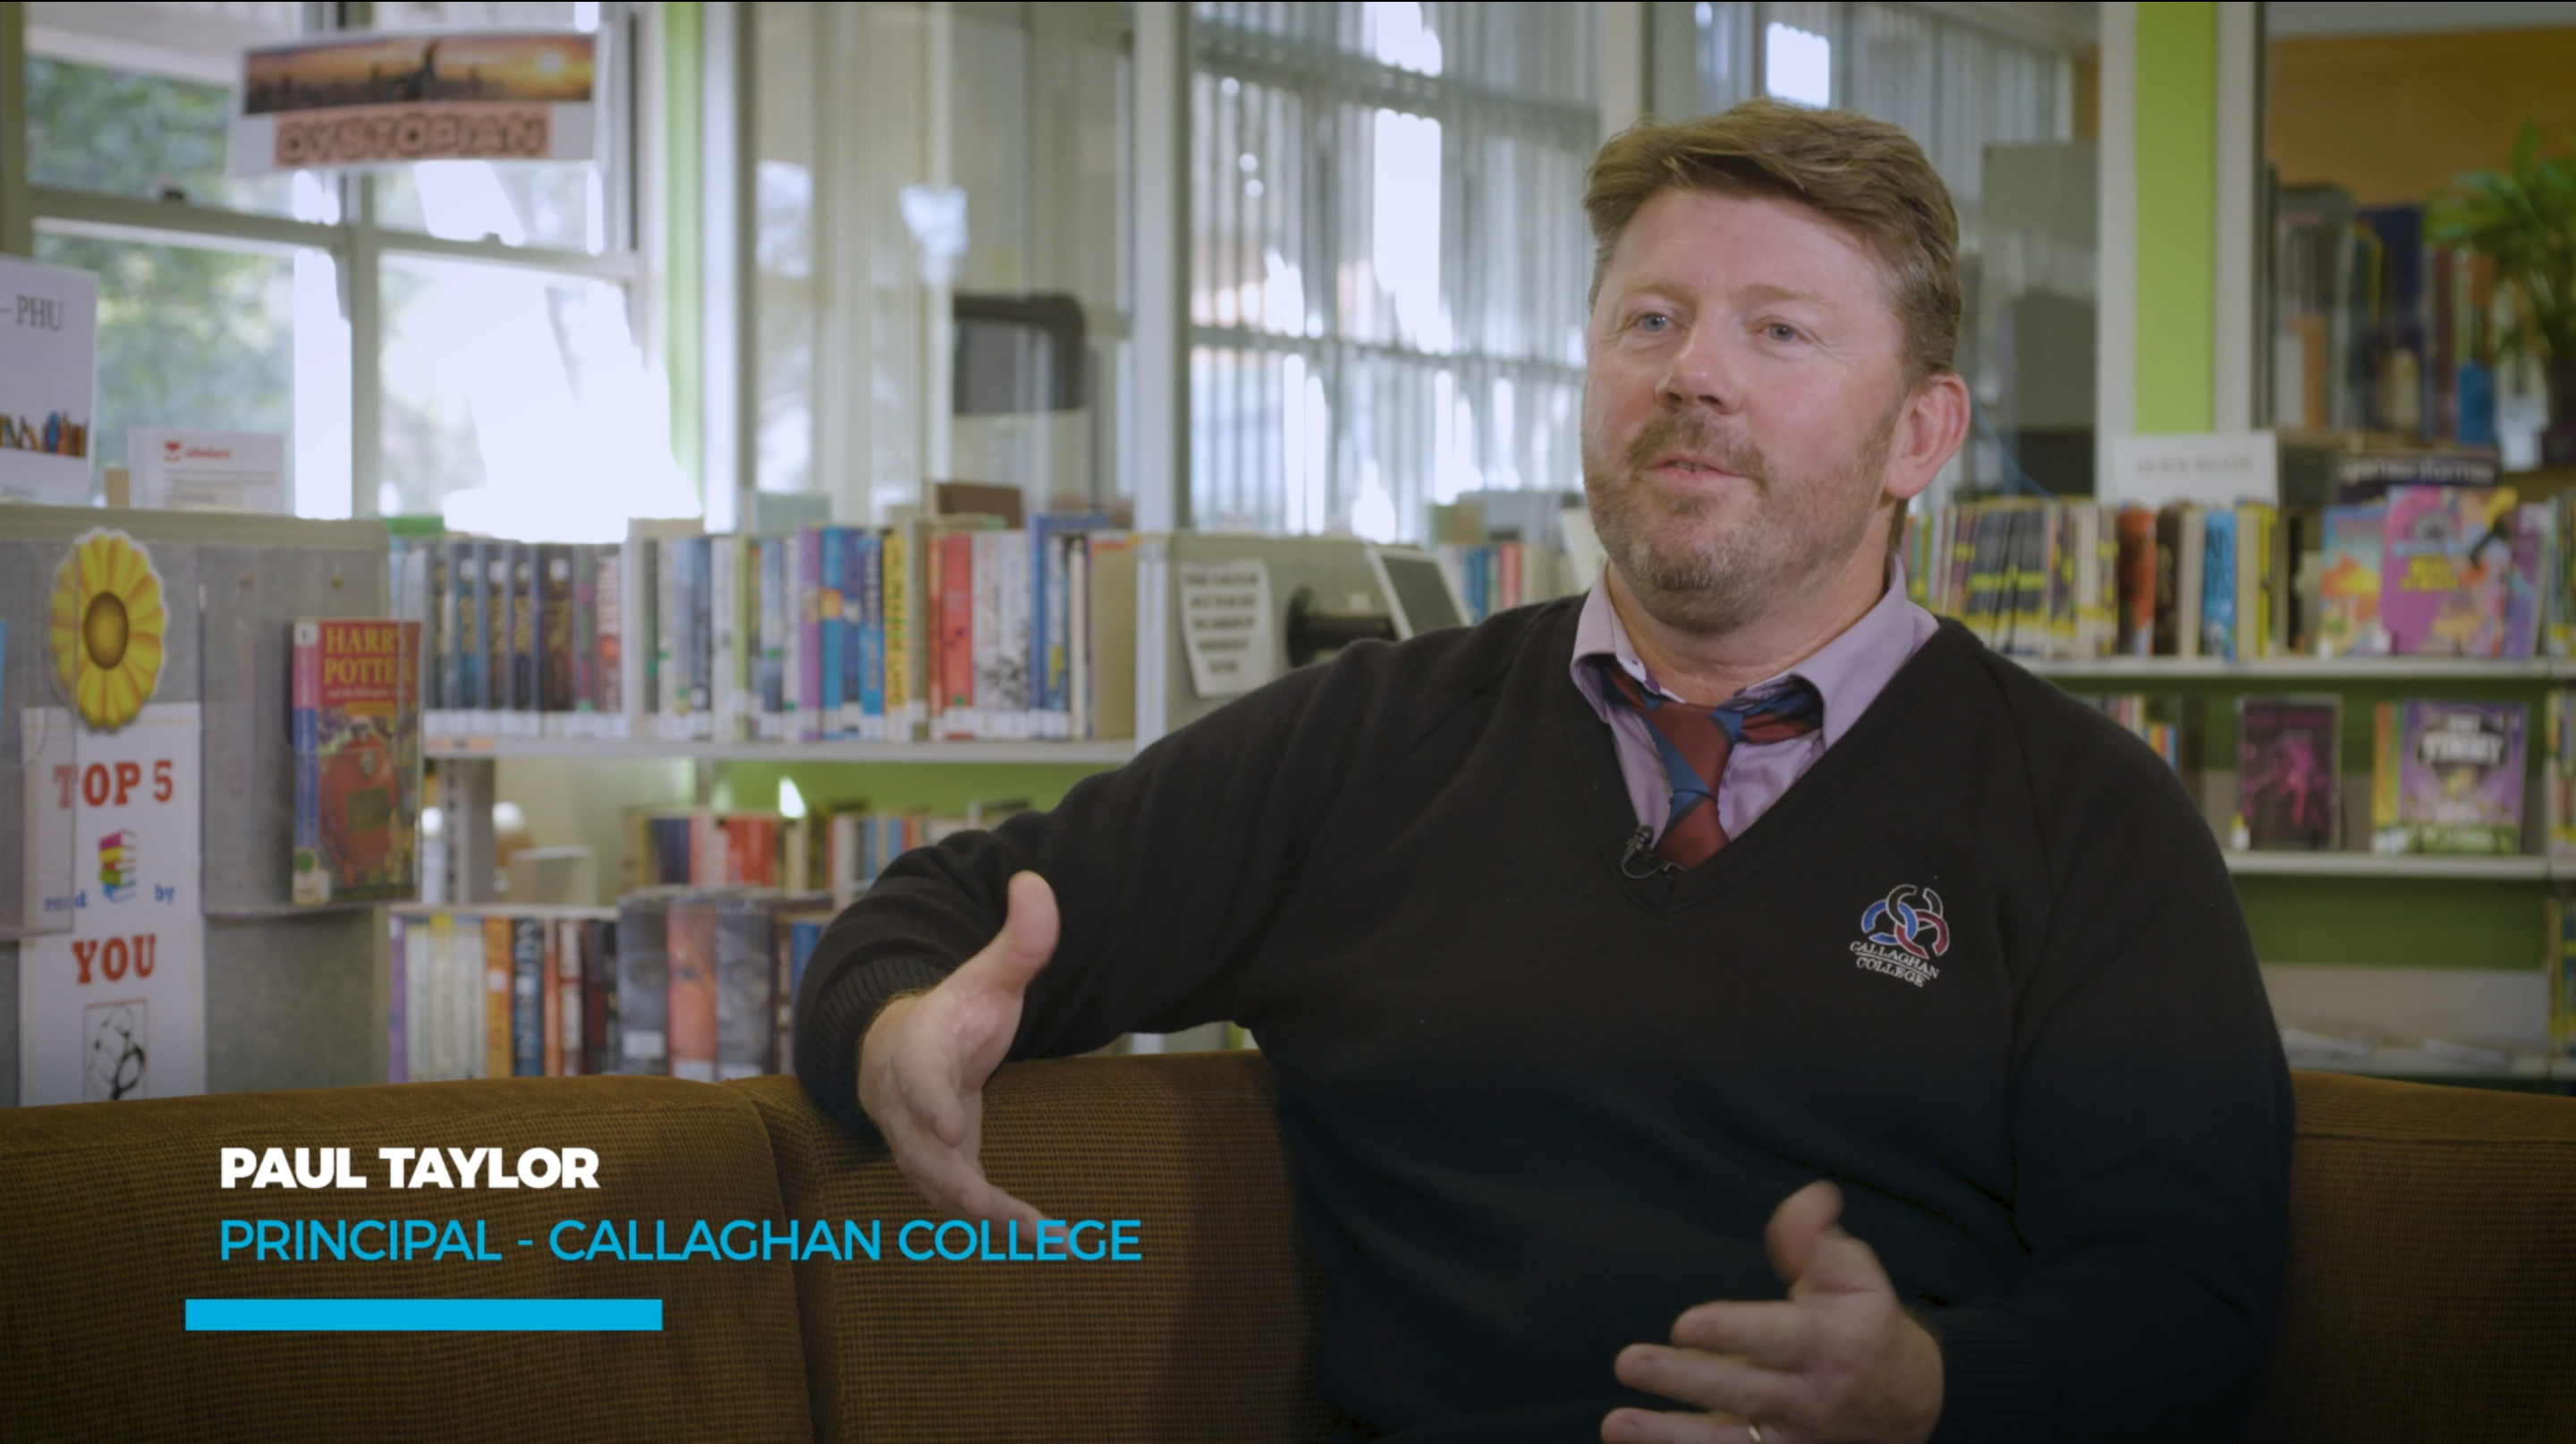 Paul Taylor - Principal of Callaghan College